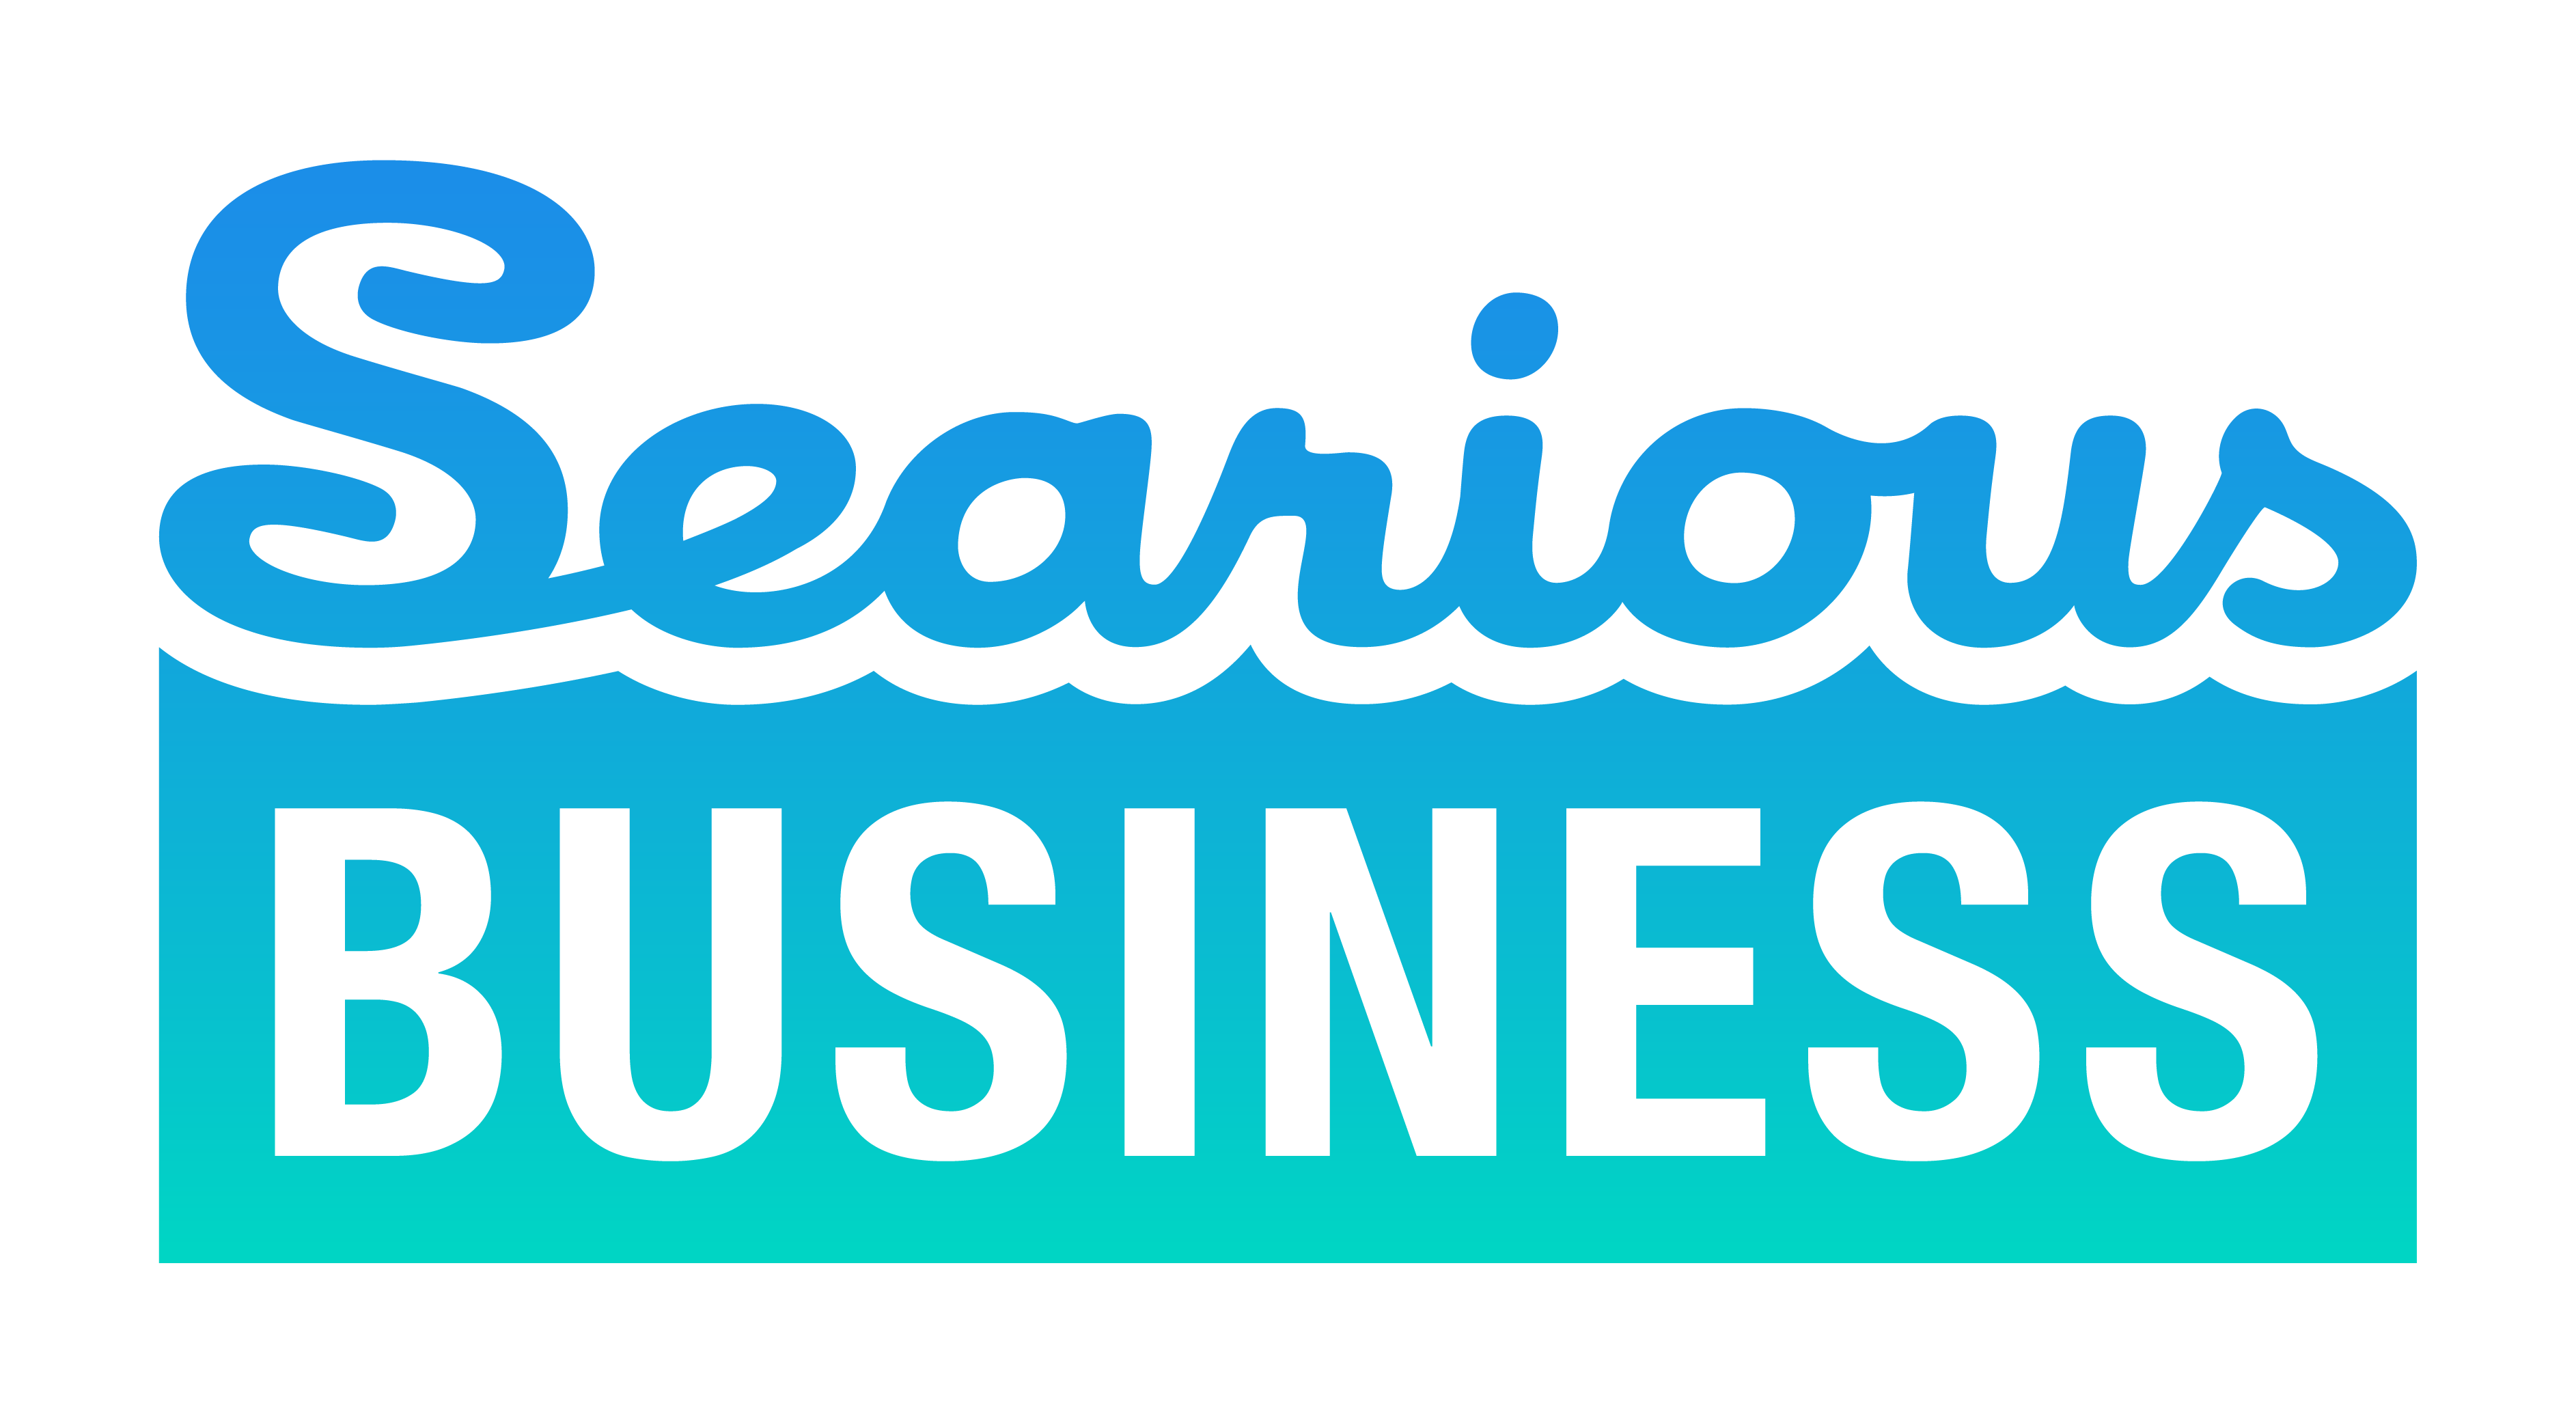 https://europeanplasticspact.org/wp-content/uploads/2020/03/Searious-Business.png